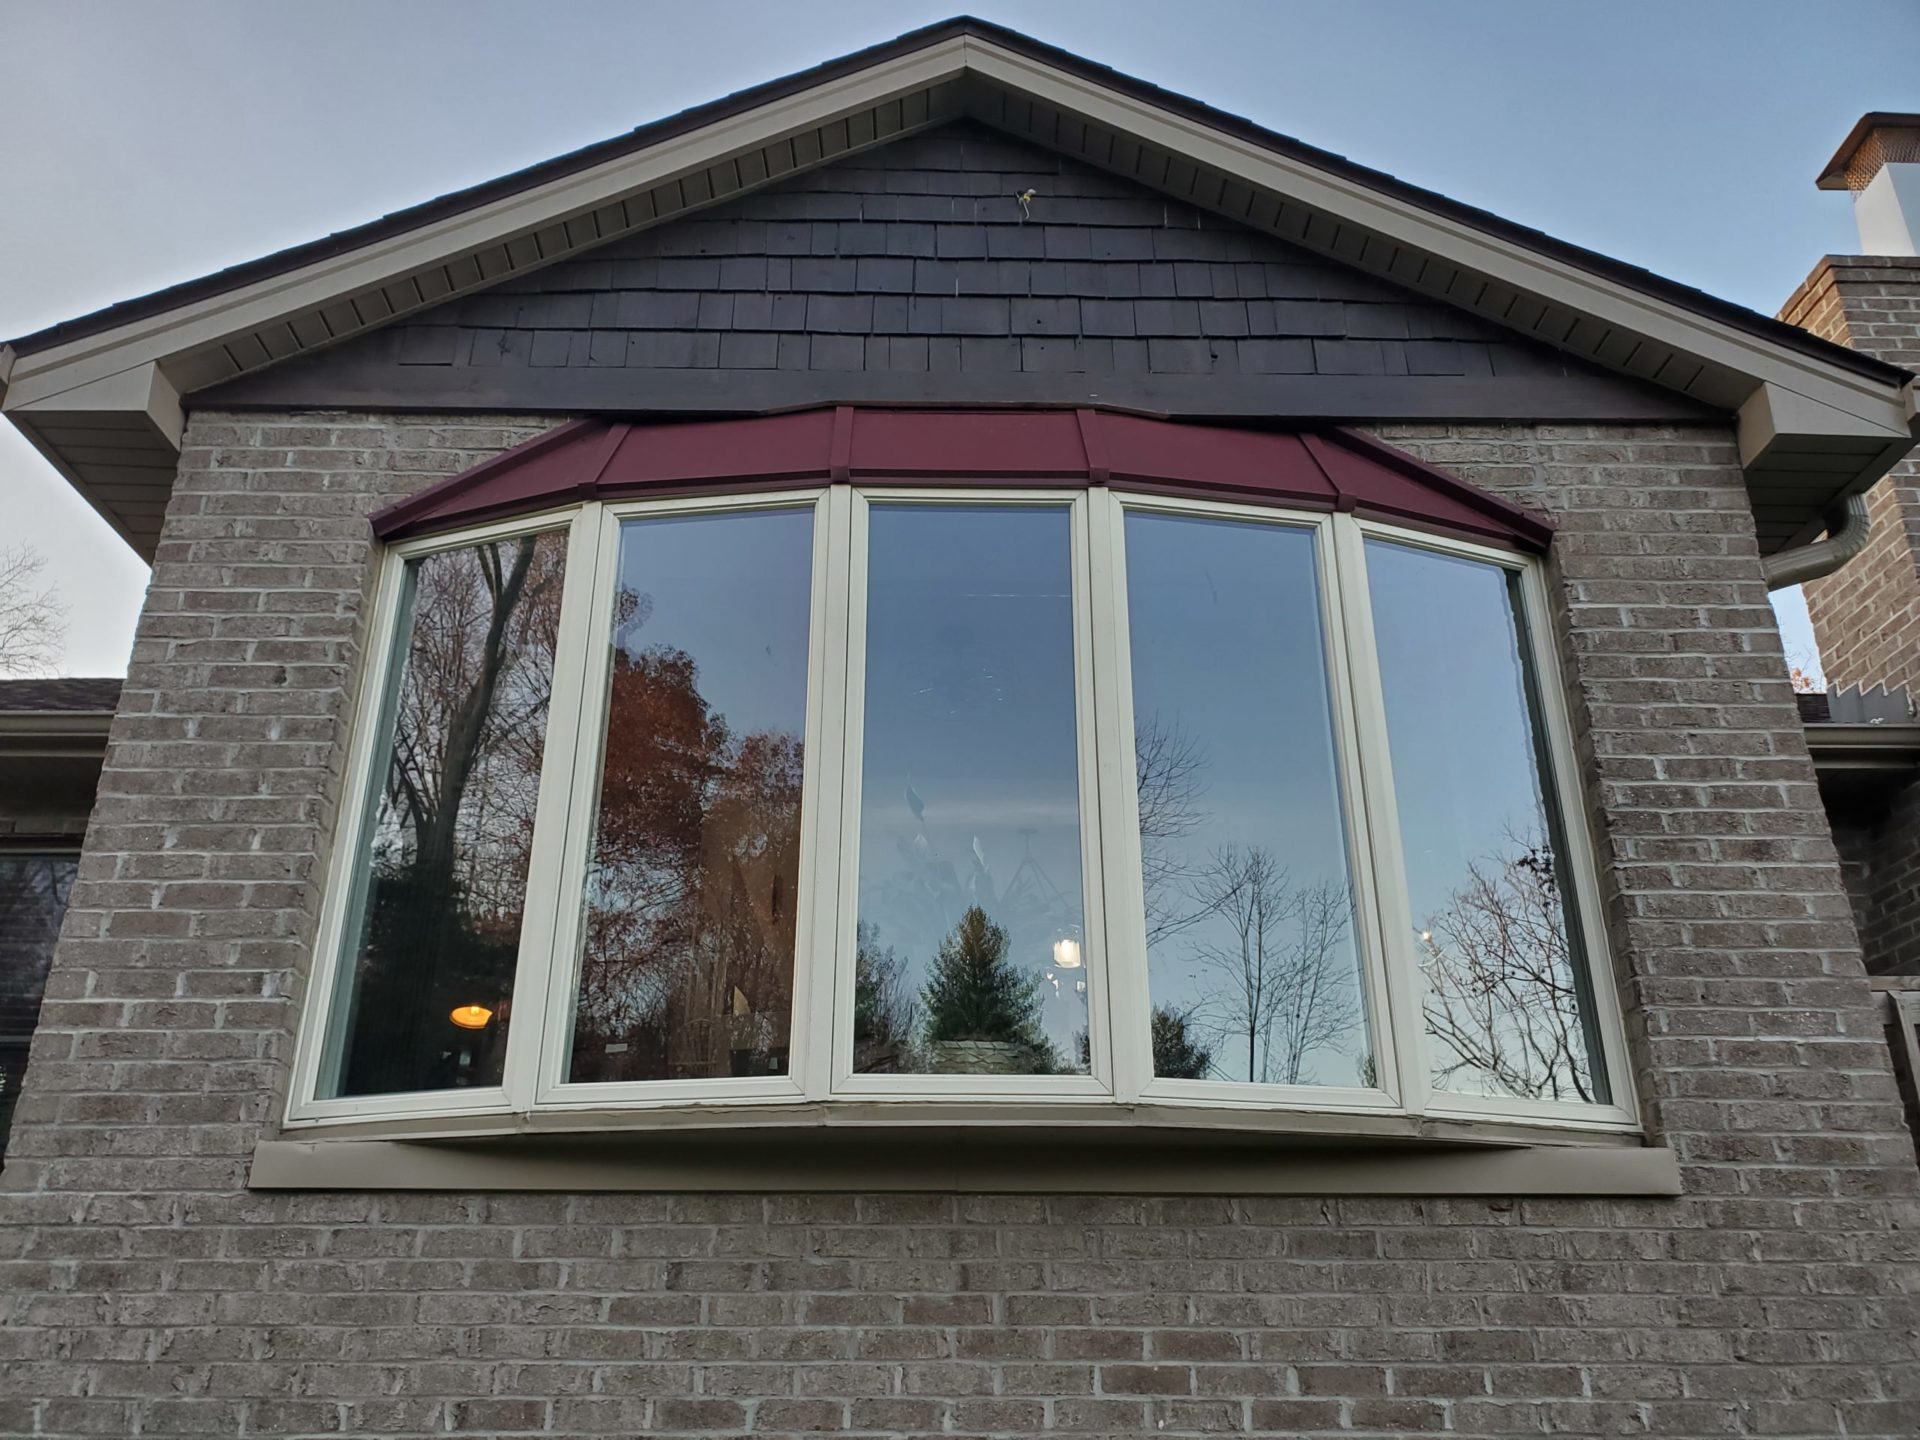 red metal roofing on window